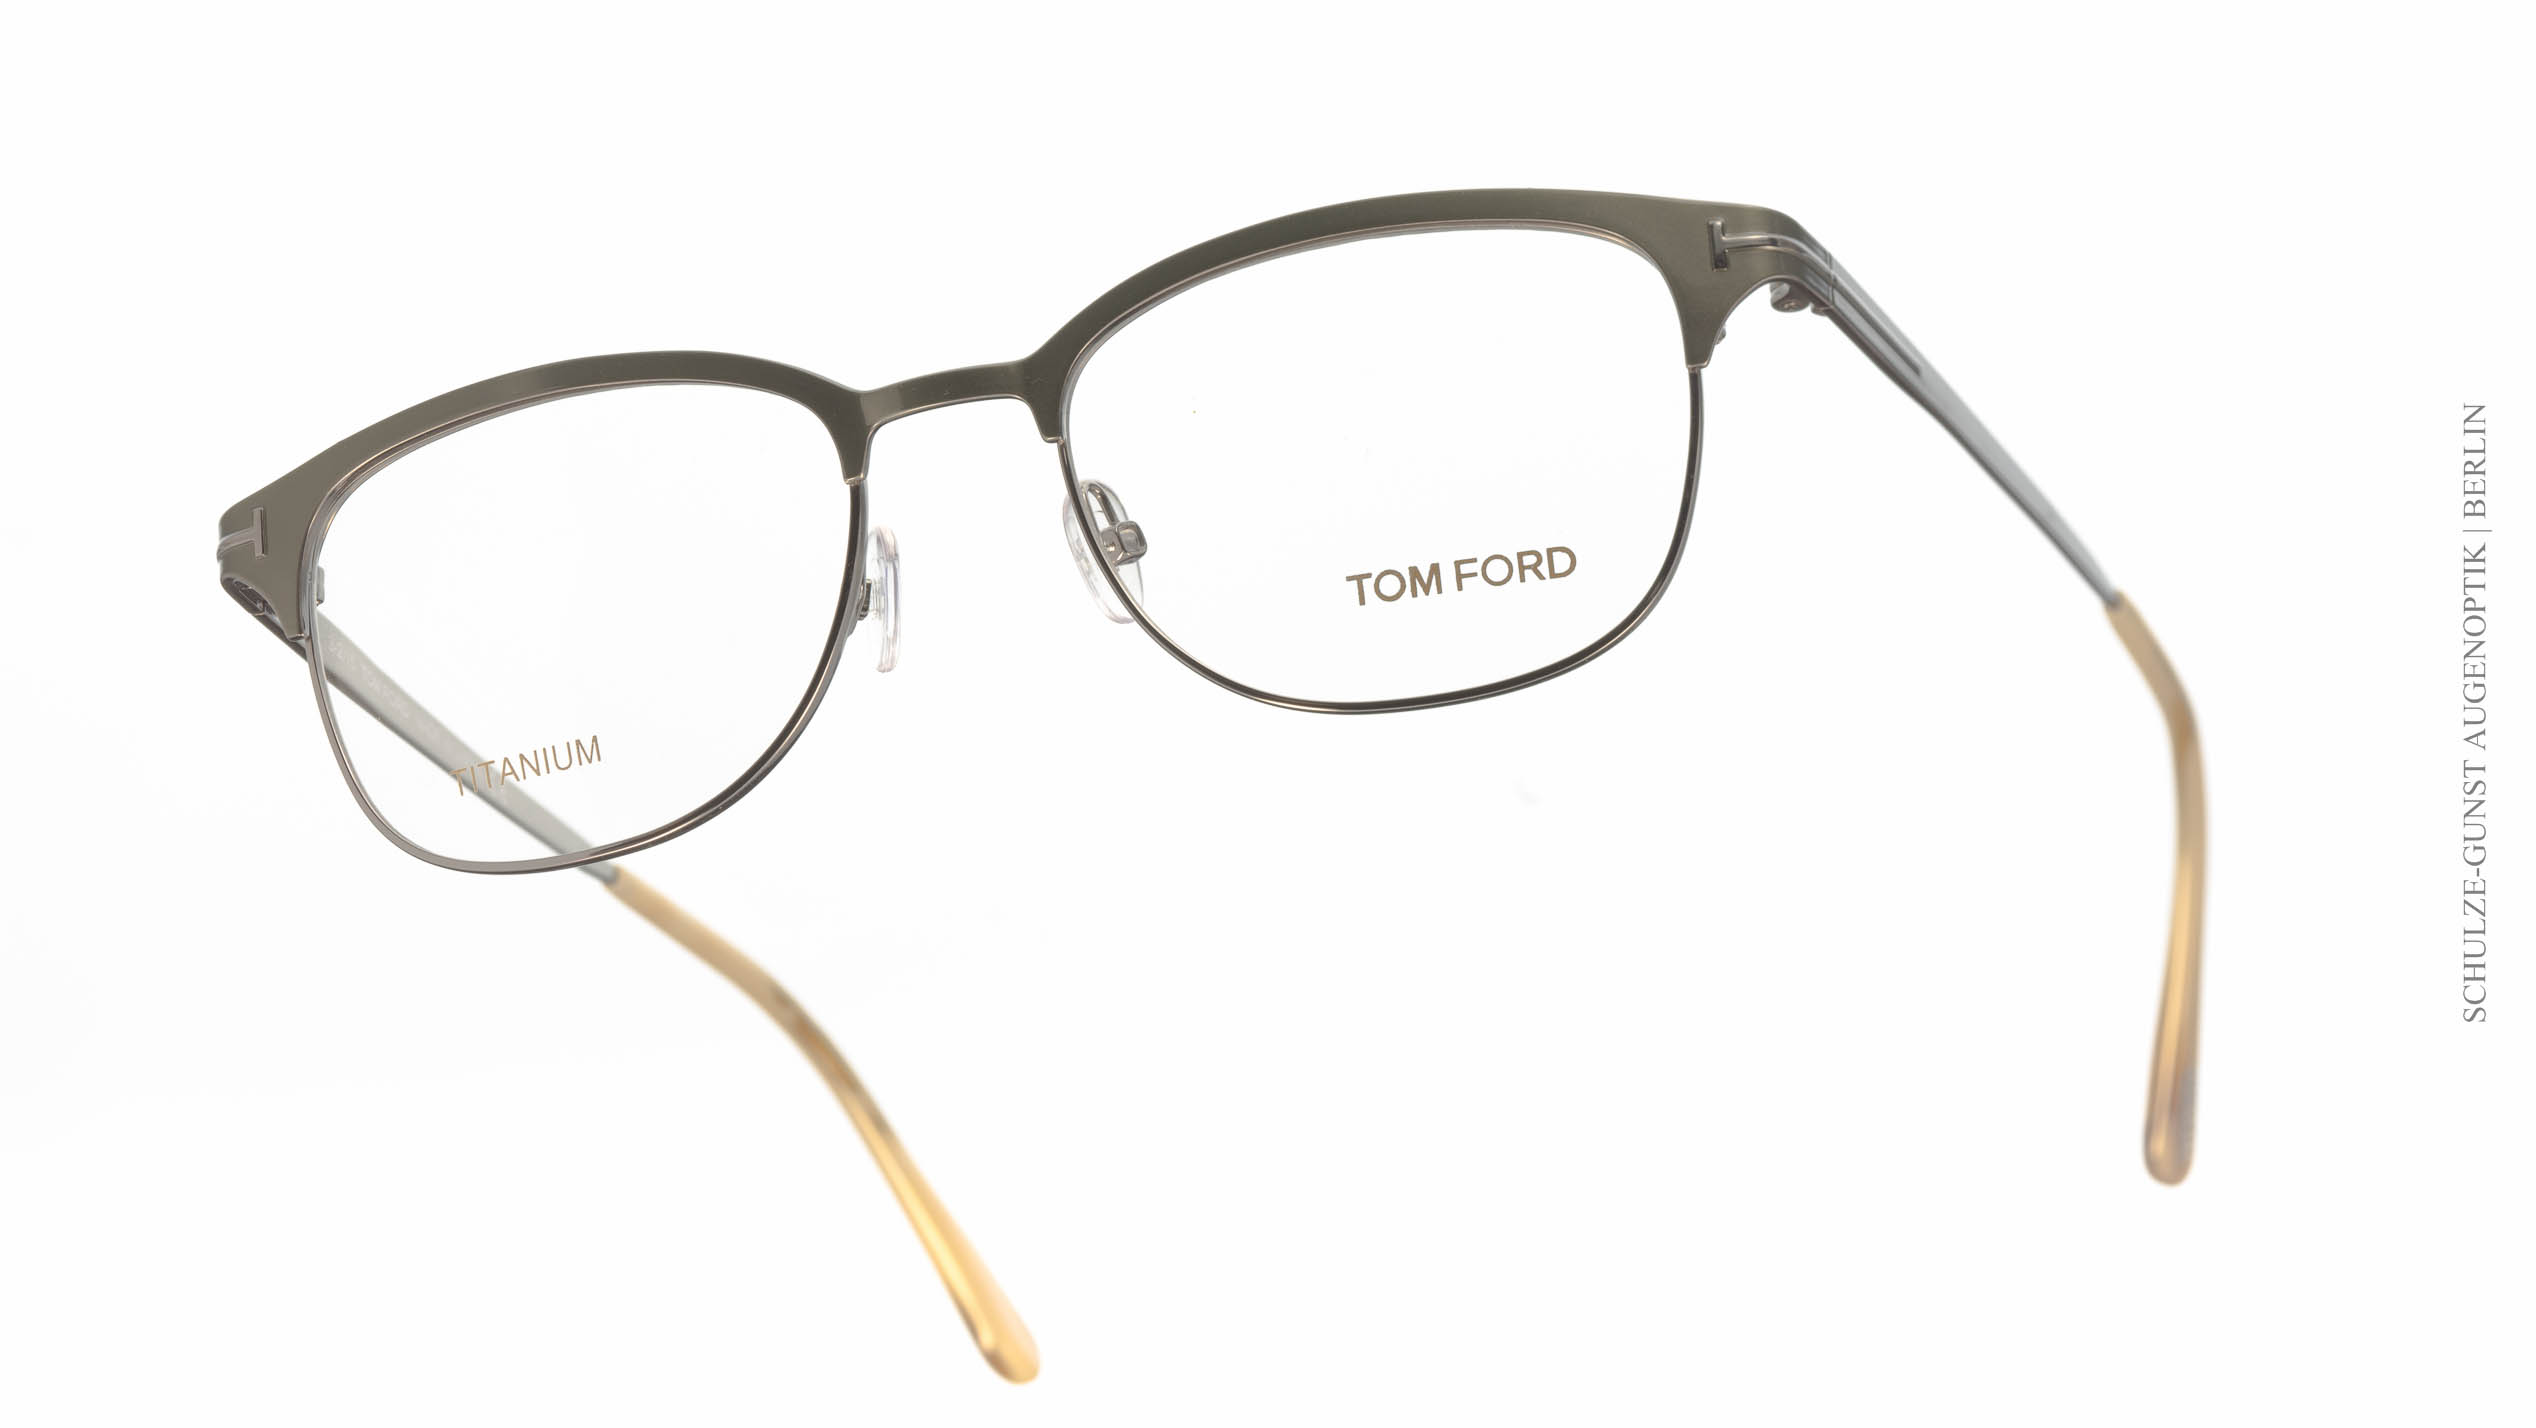 herrenbrille tom ford archive schulze gunst augenoptik seit 1894. Black Bedroom Furniture Sets. Home Design Ideas